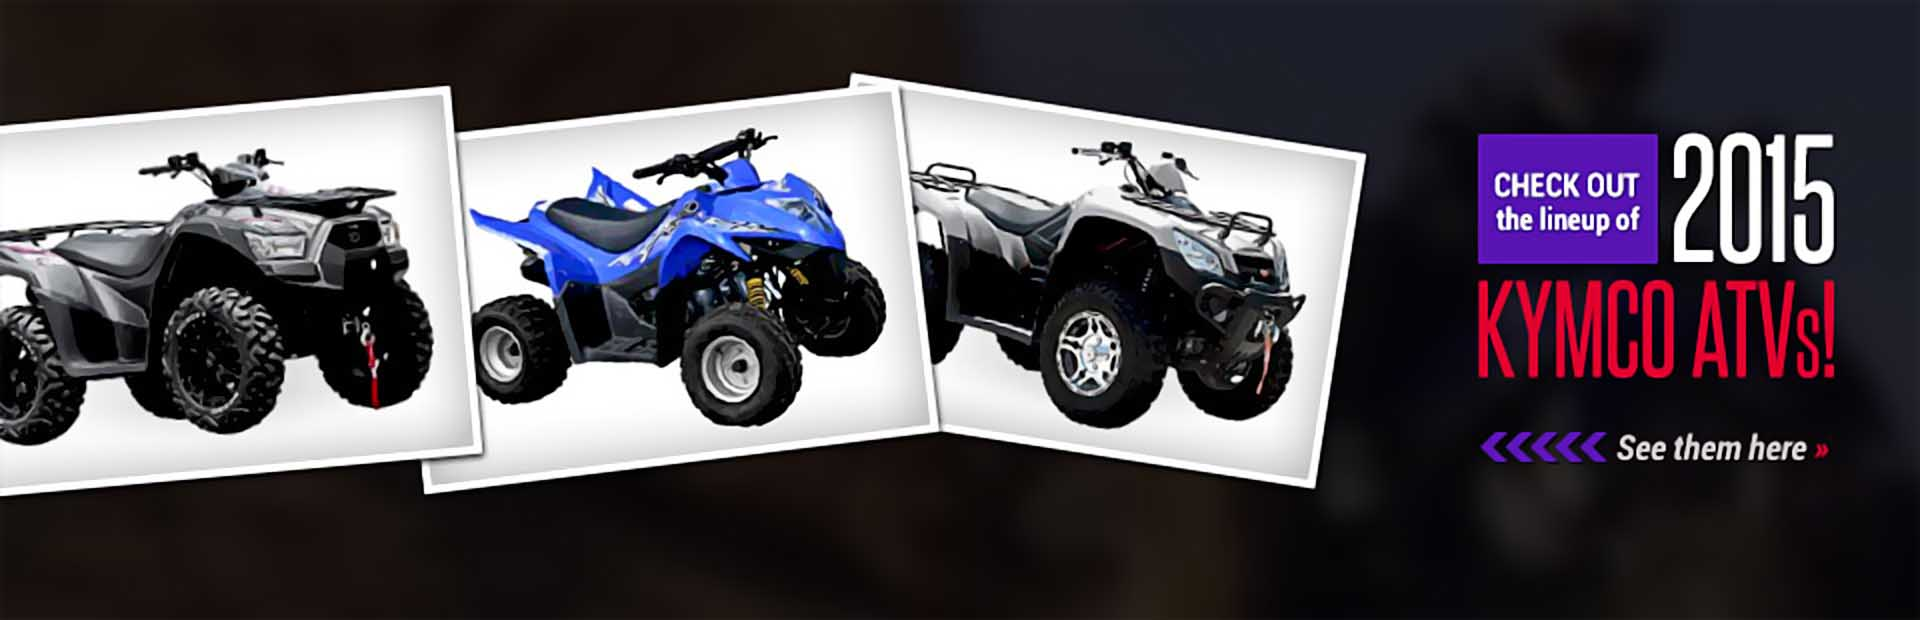 2015 KYMCO ATVs: Click here to view the lineup.